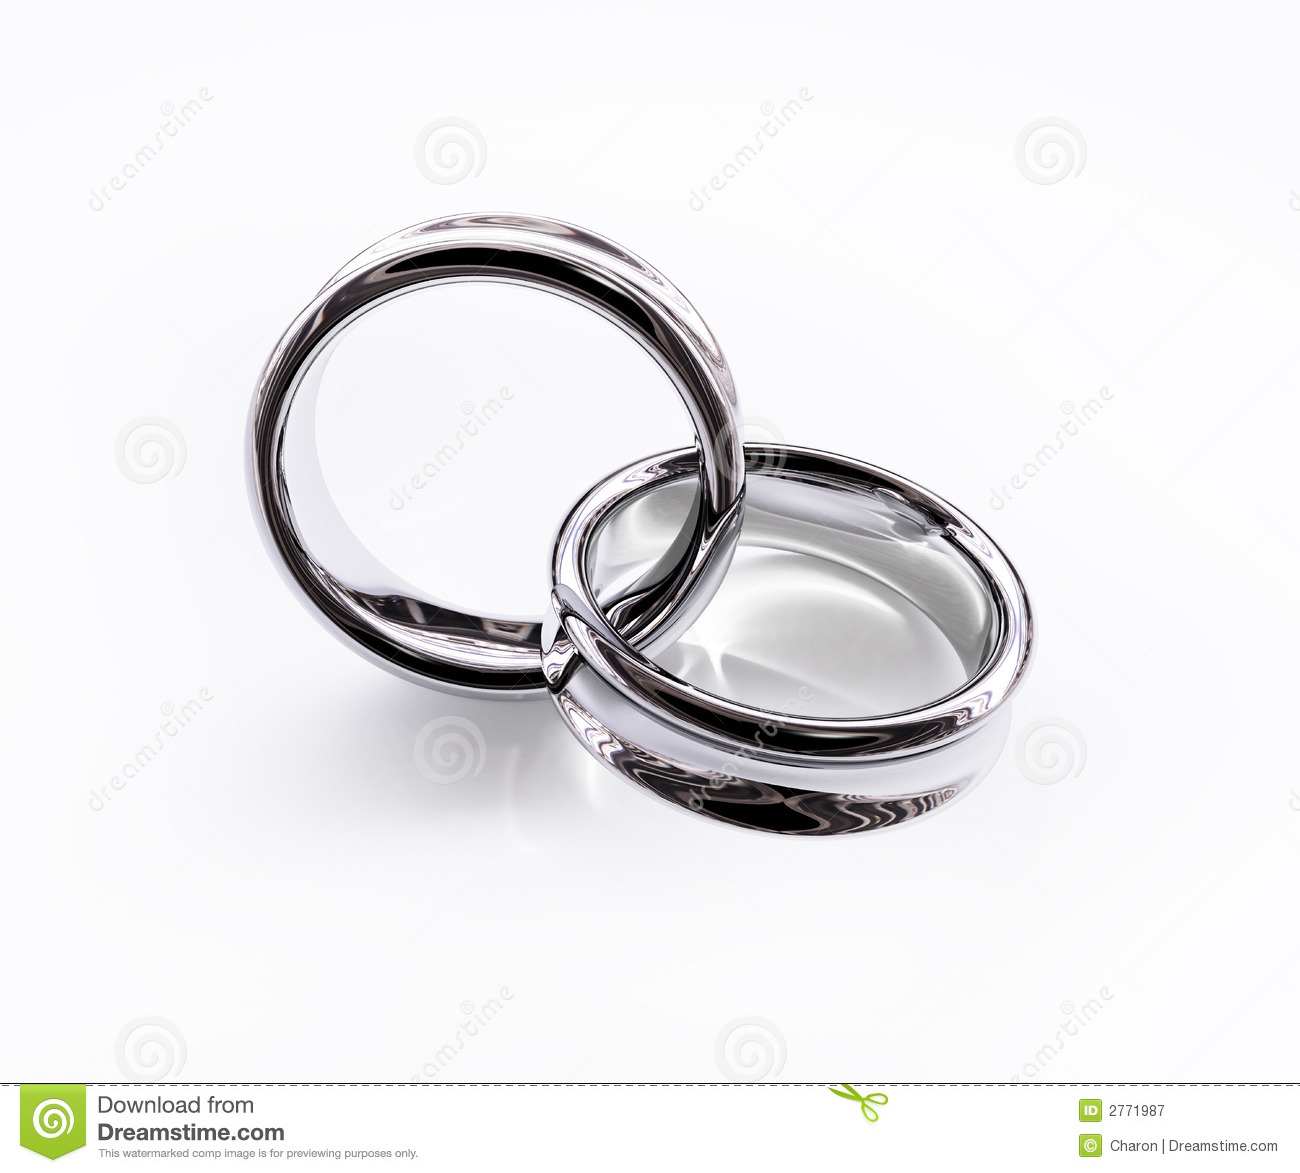 interlocking wedding rings clipart - photo #30